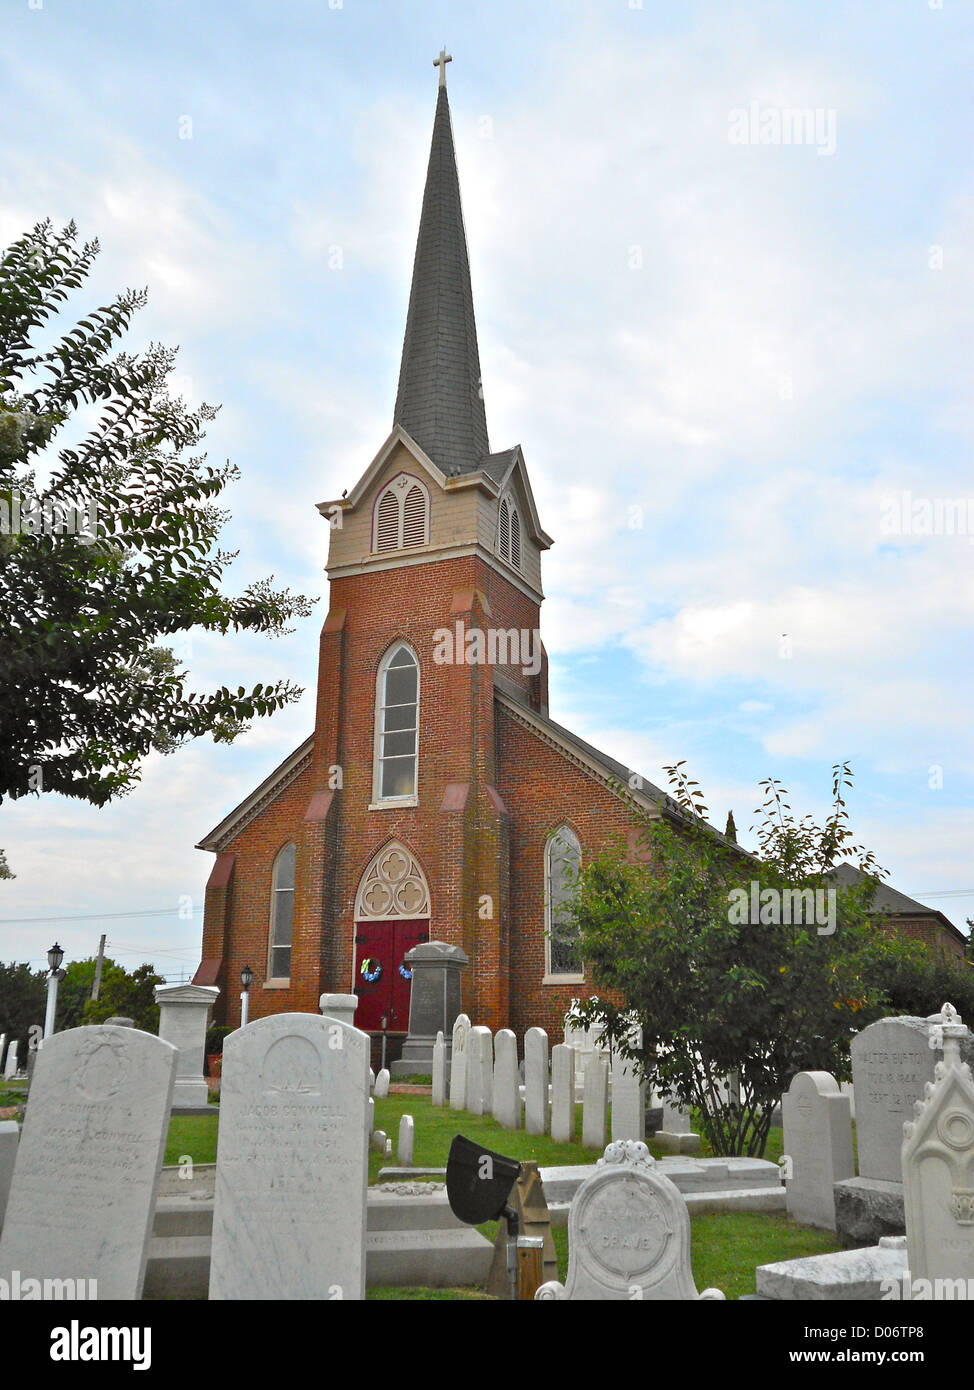 St Peter's Episcopal Church in Lewes, Delaware - Stock Image